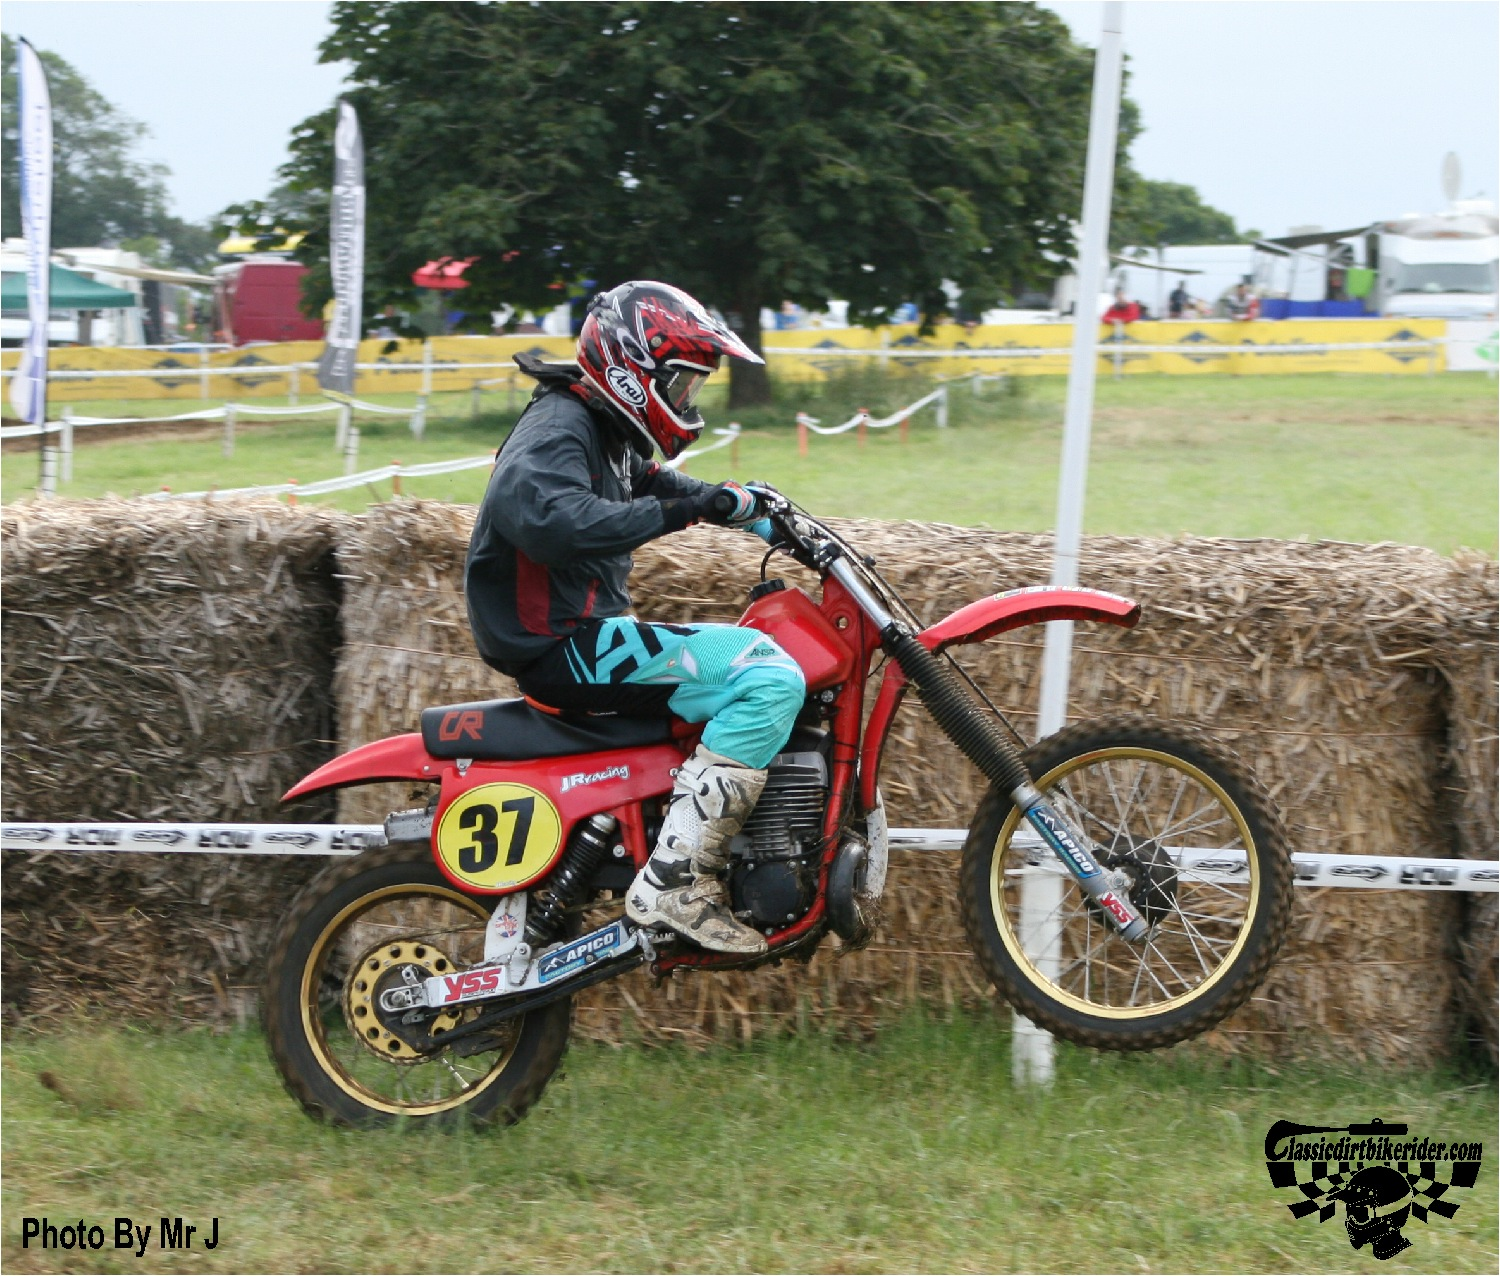 king of the castle 2015 photos Farleigh Castle twinshock motocross classicdirtbikerider.com 132